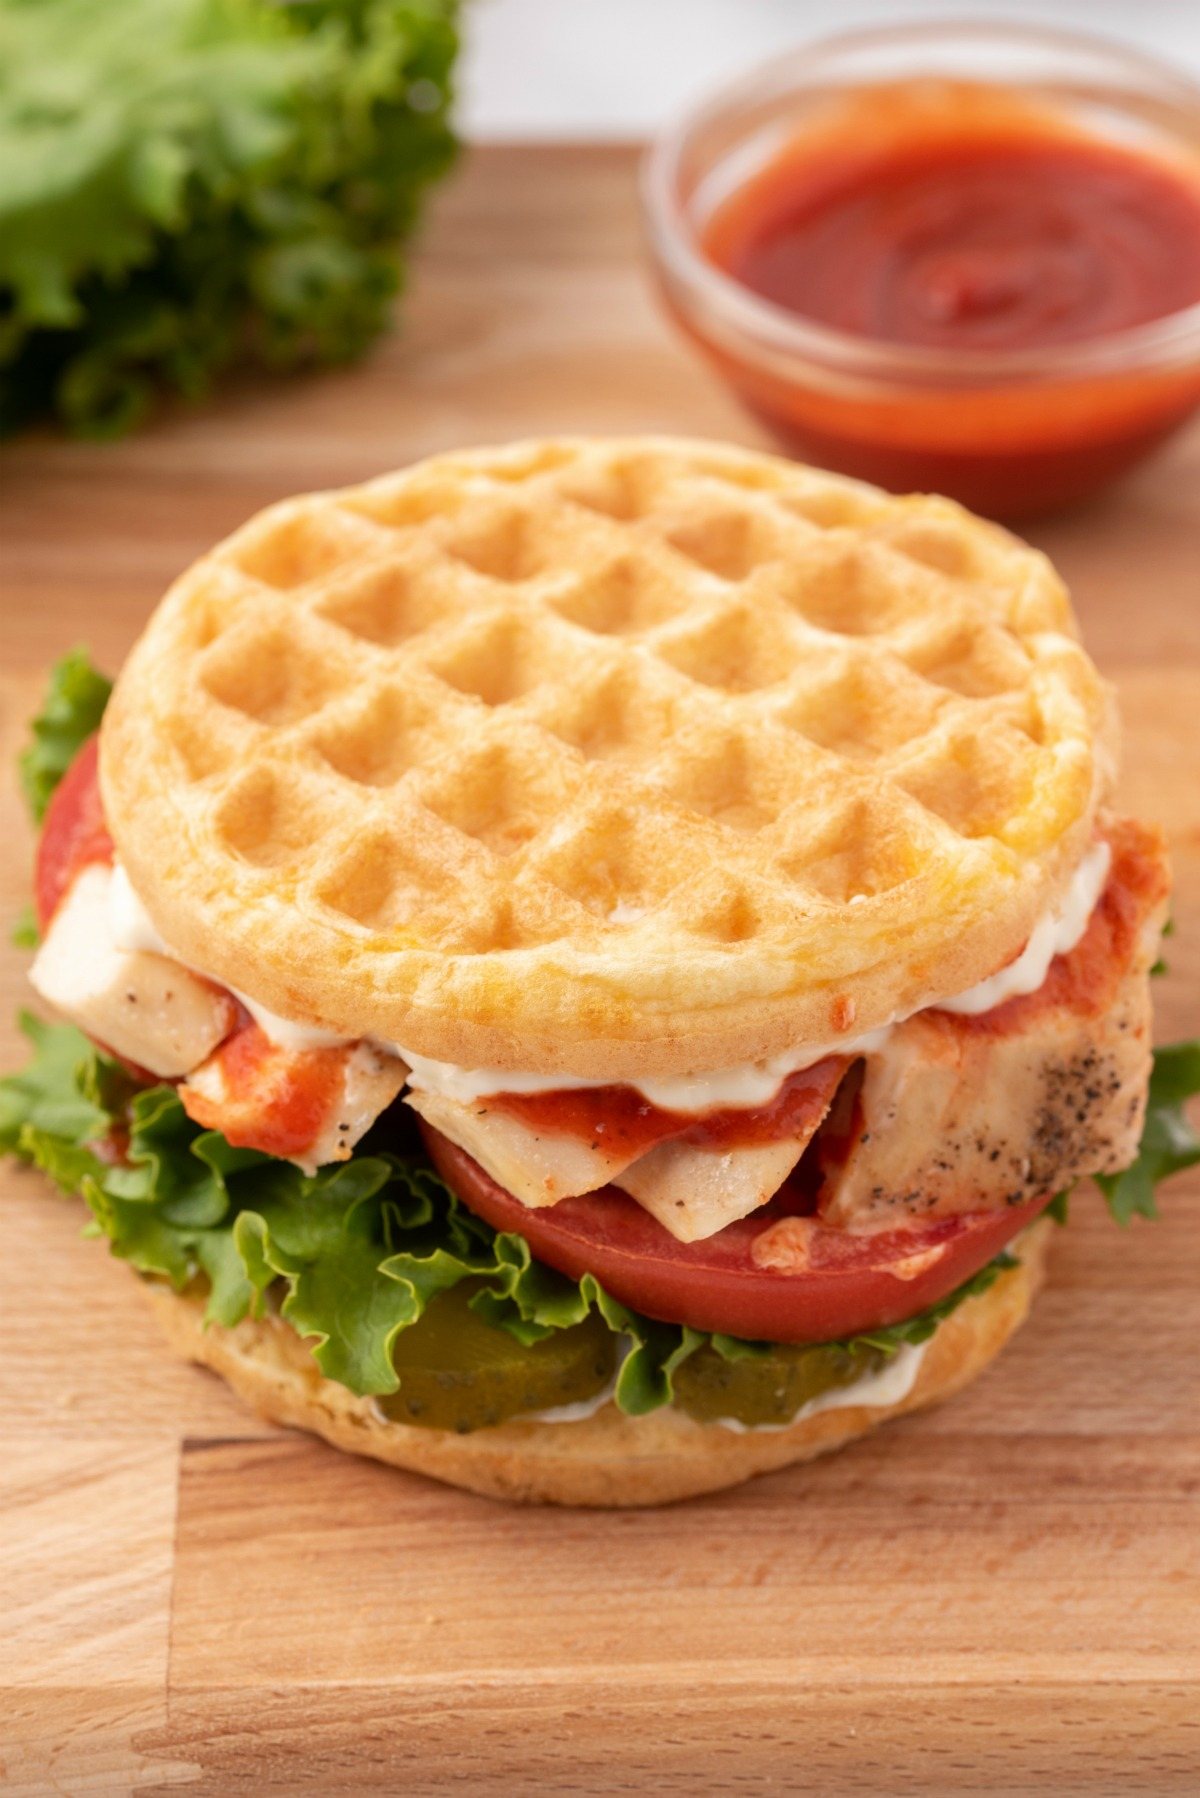 Chicken on a chaffle with vegetables.